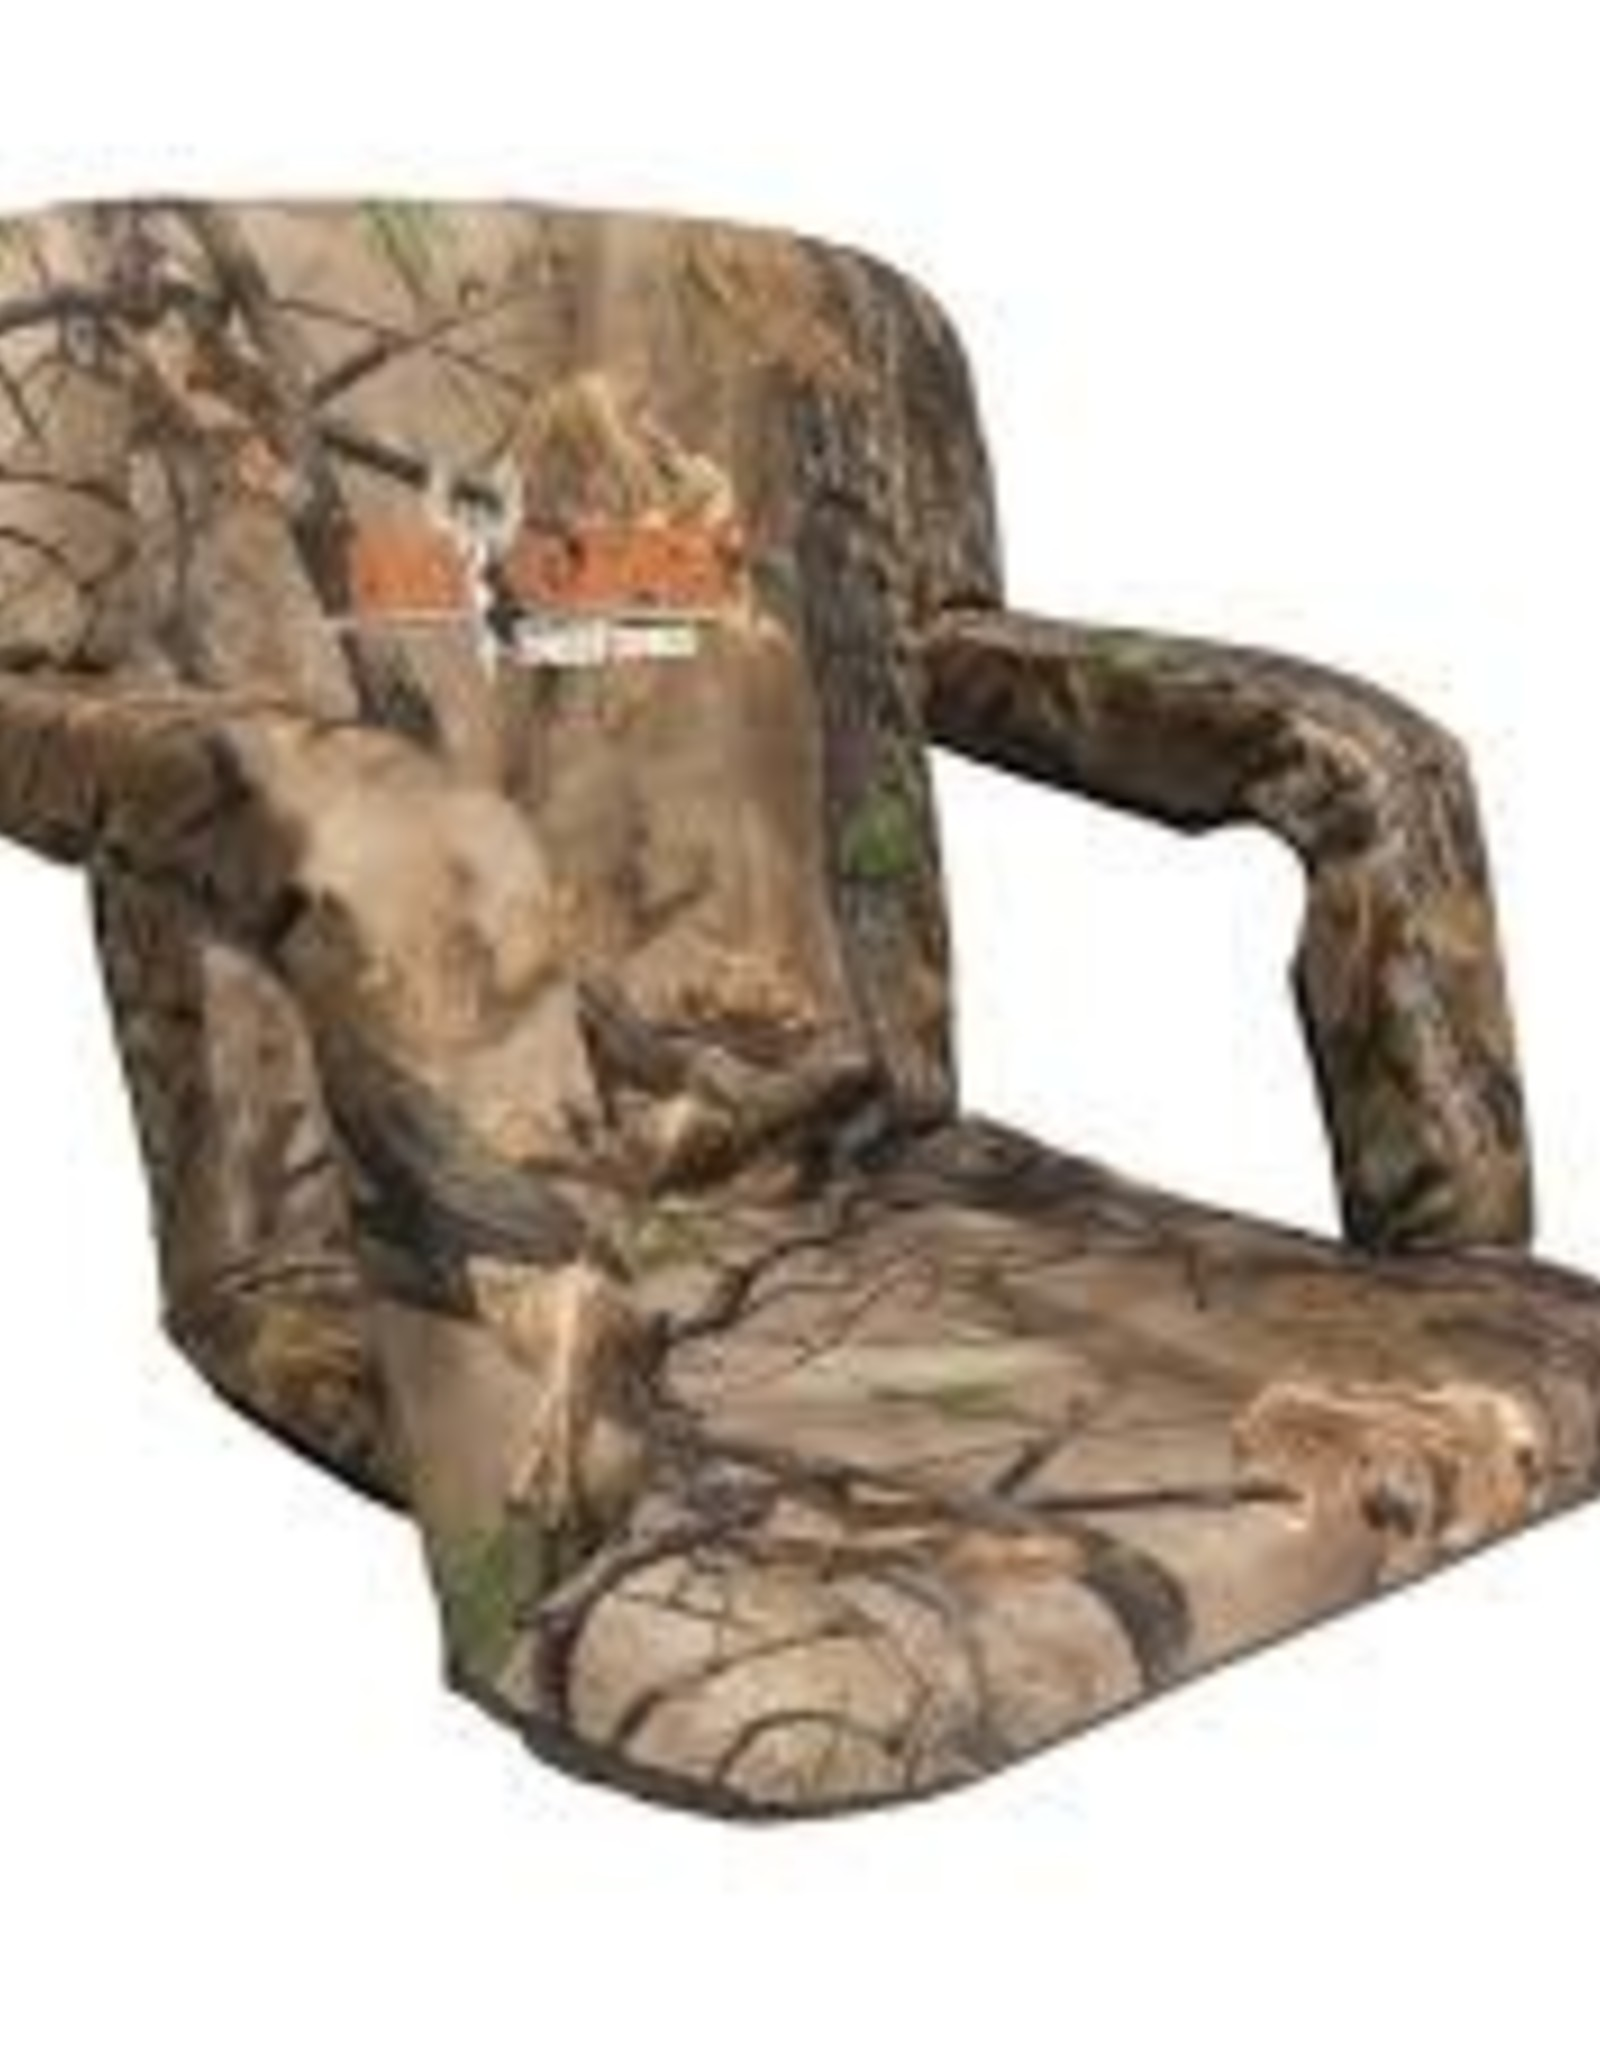 Muddy The Deluxe Stadium Chair